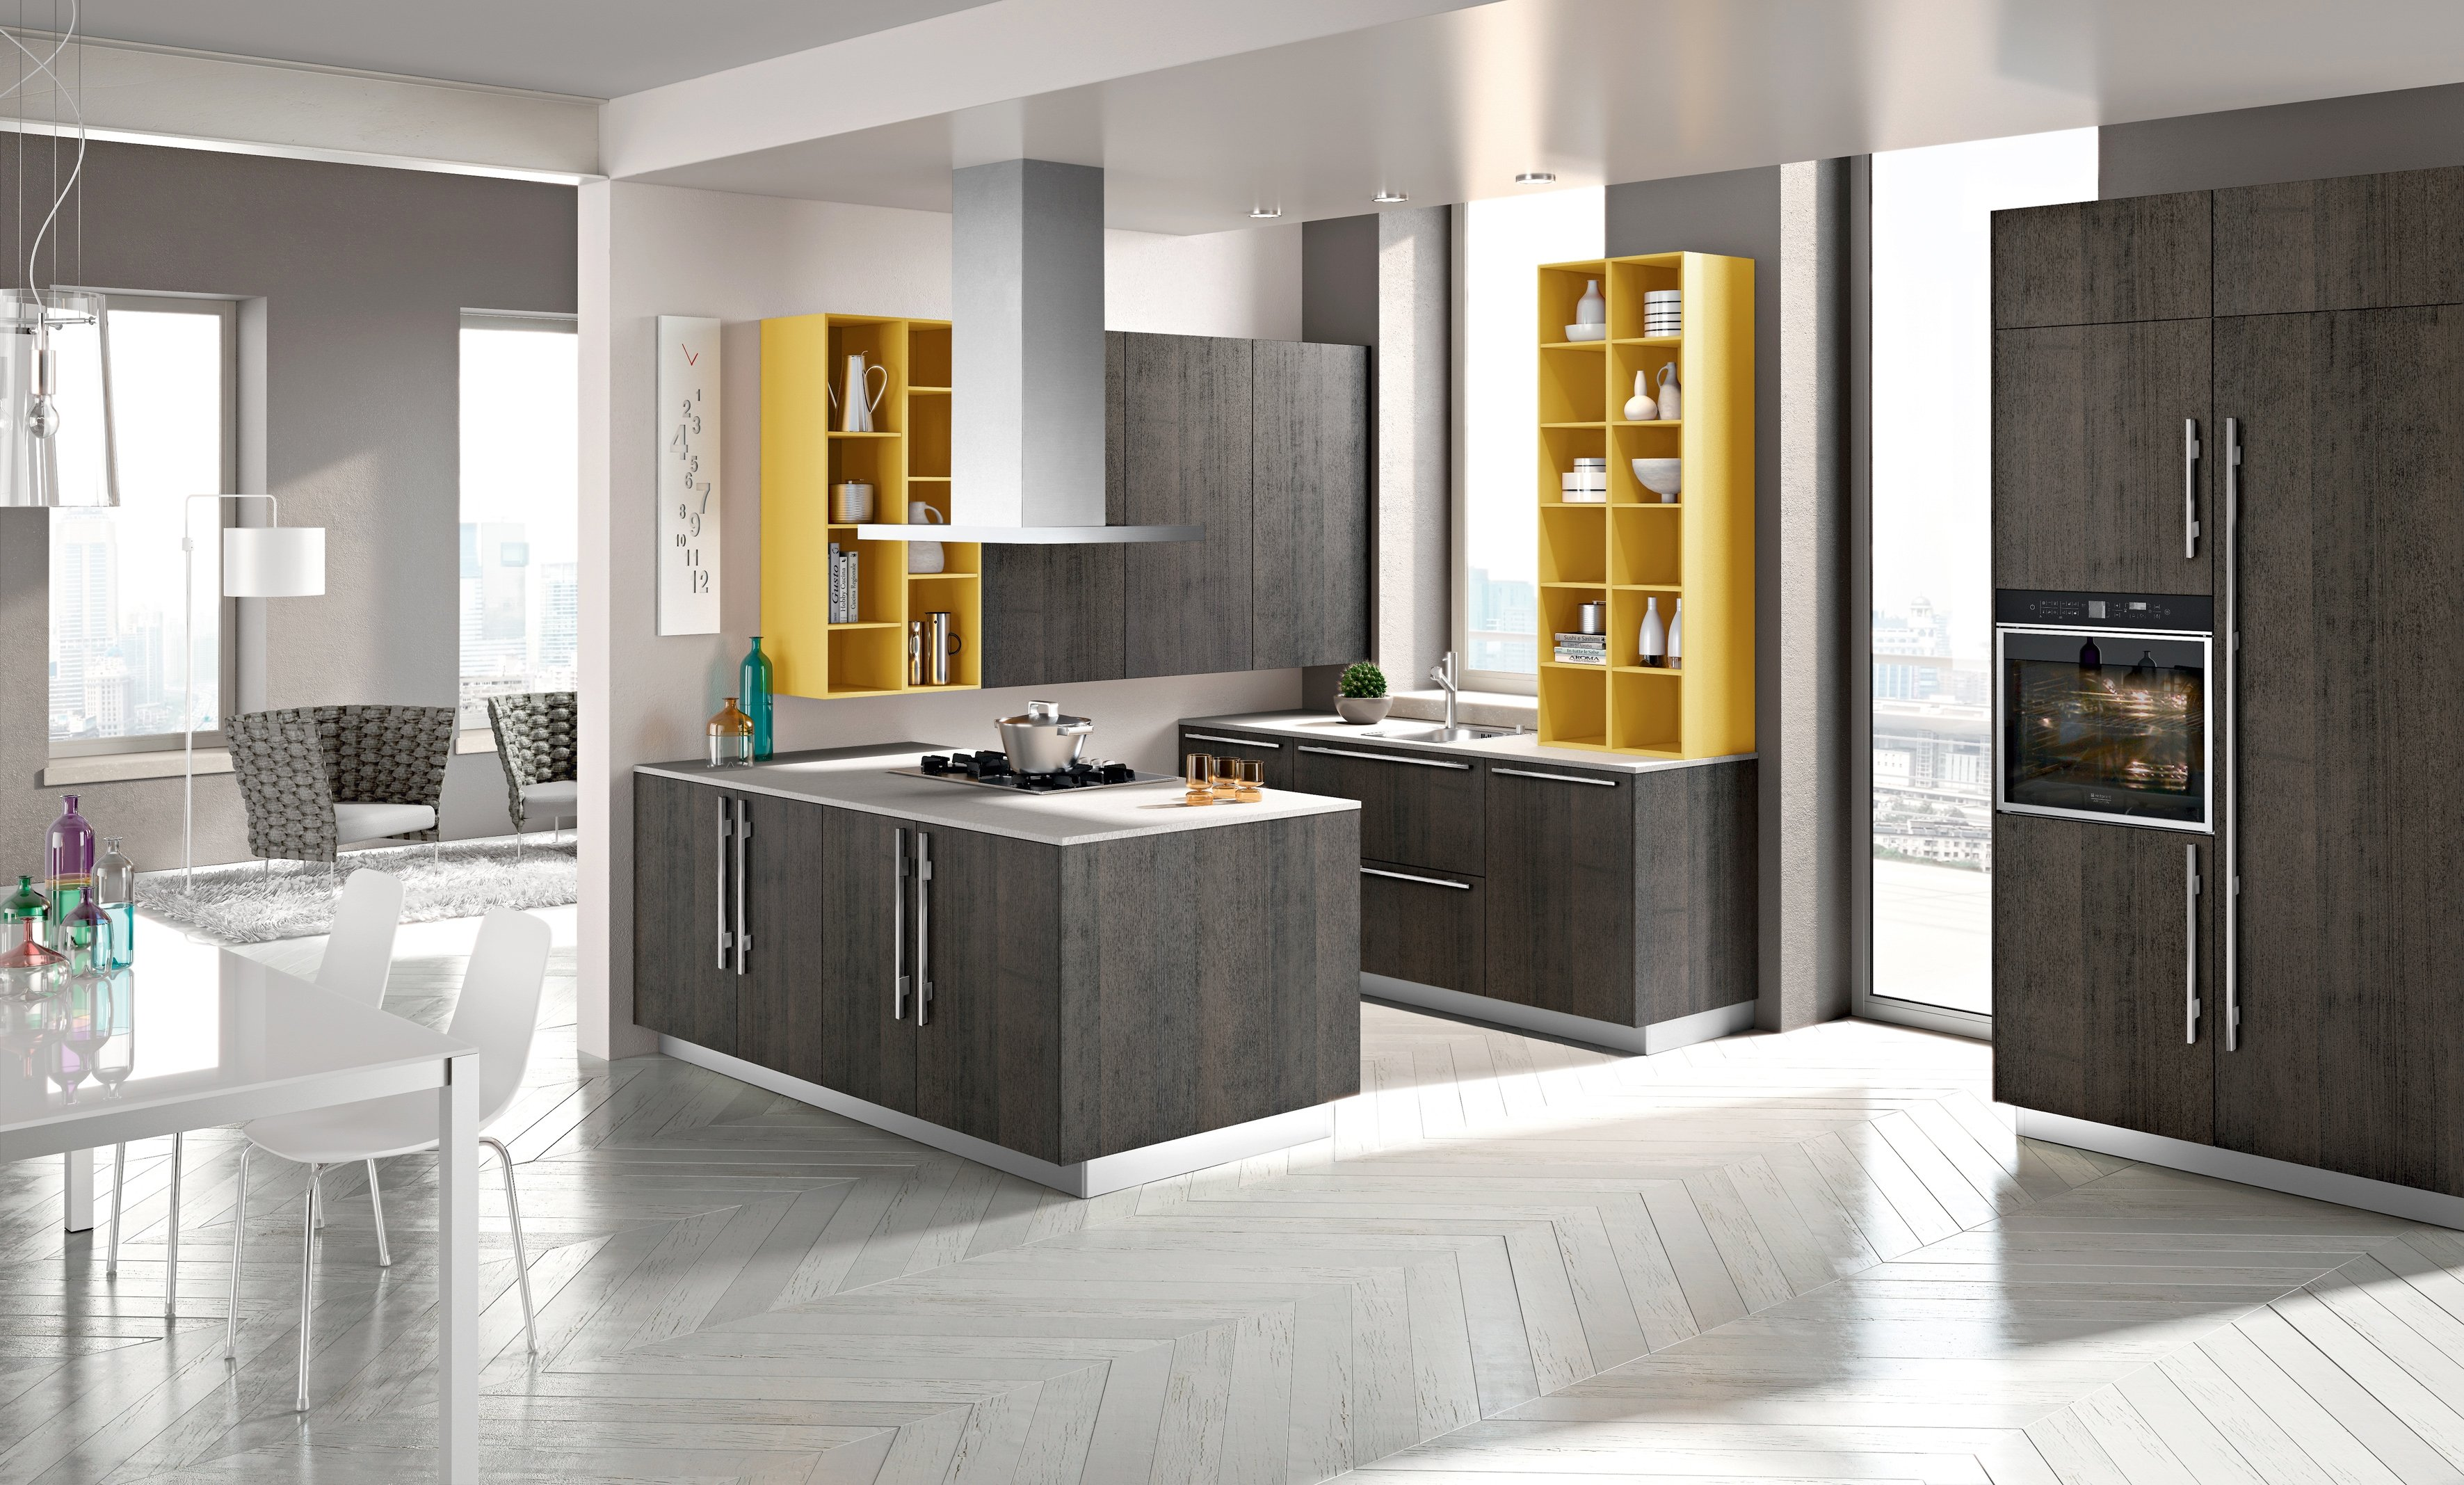 Cucine progetto pi preventivo cose di casa Modern kitchen design ideas 2015